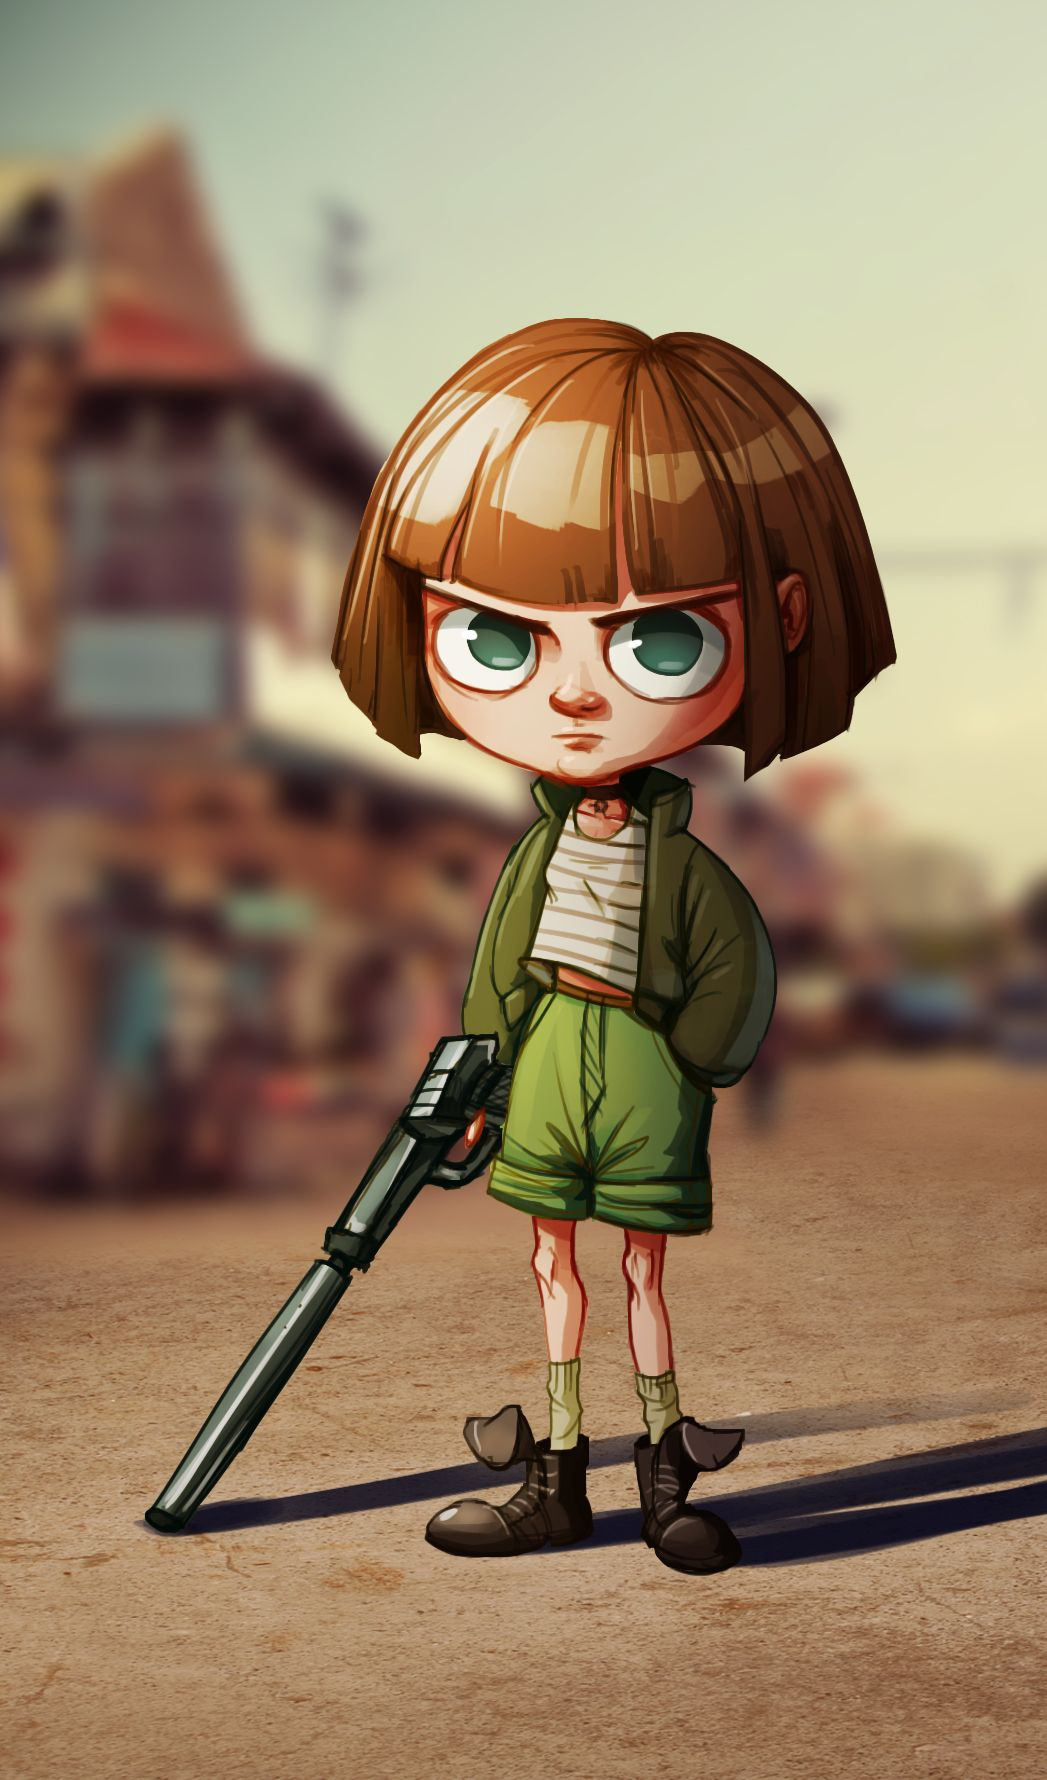 A little tribute to Mathilda from Luc Besson's Leon, which is a great movie ...